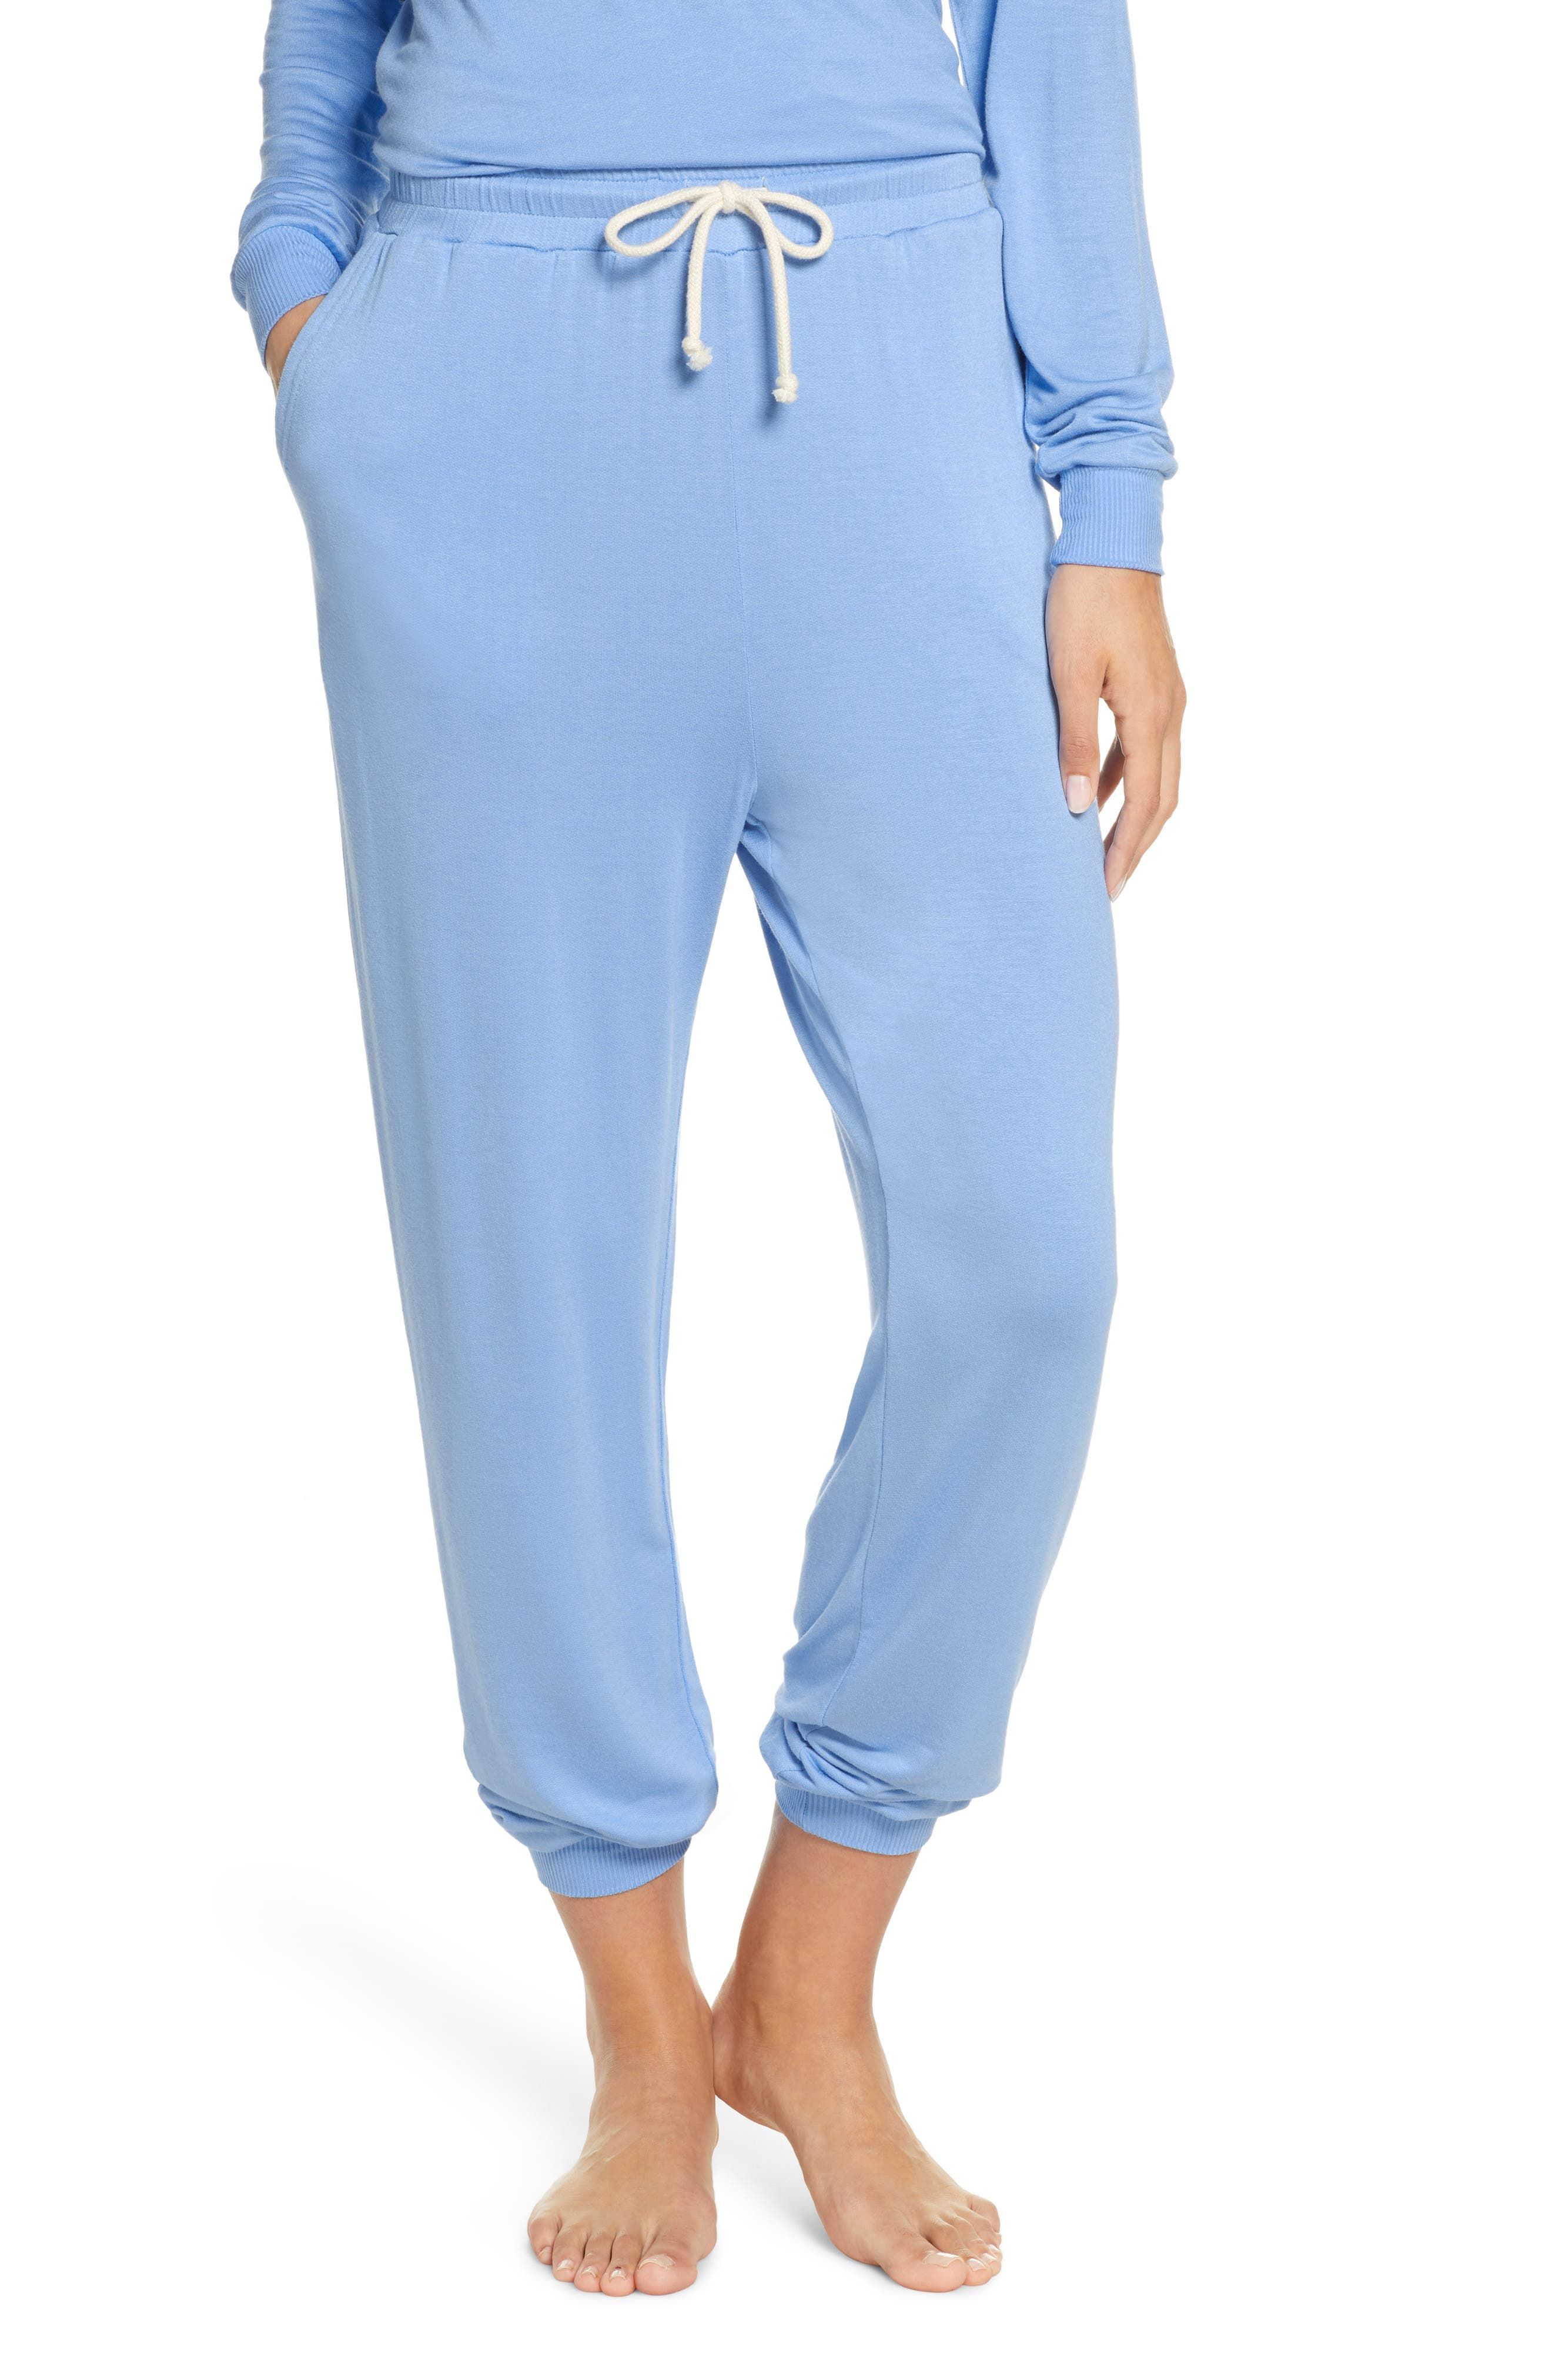 Image of Honeydew Intimates Easy Rider Sweatpants